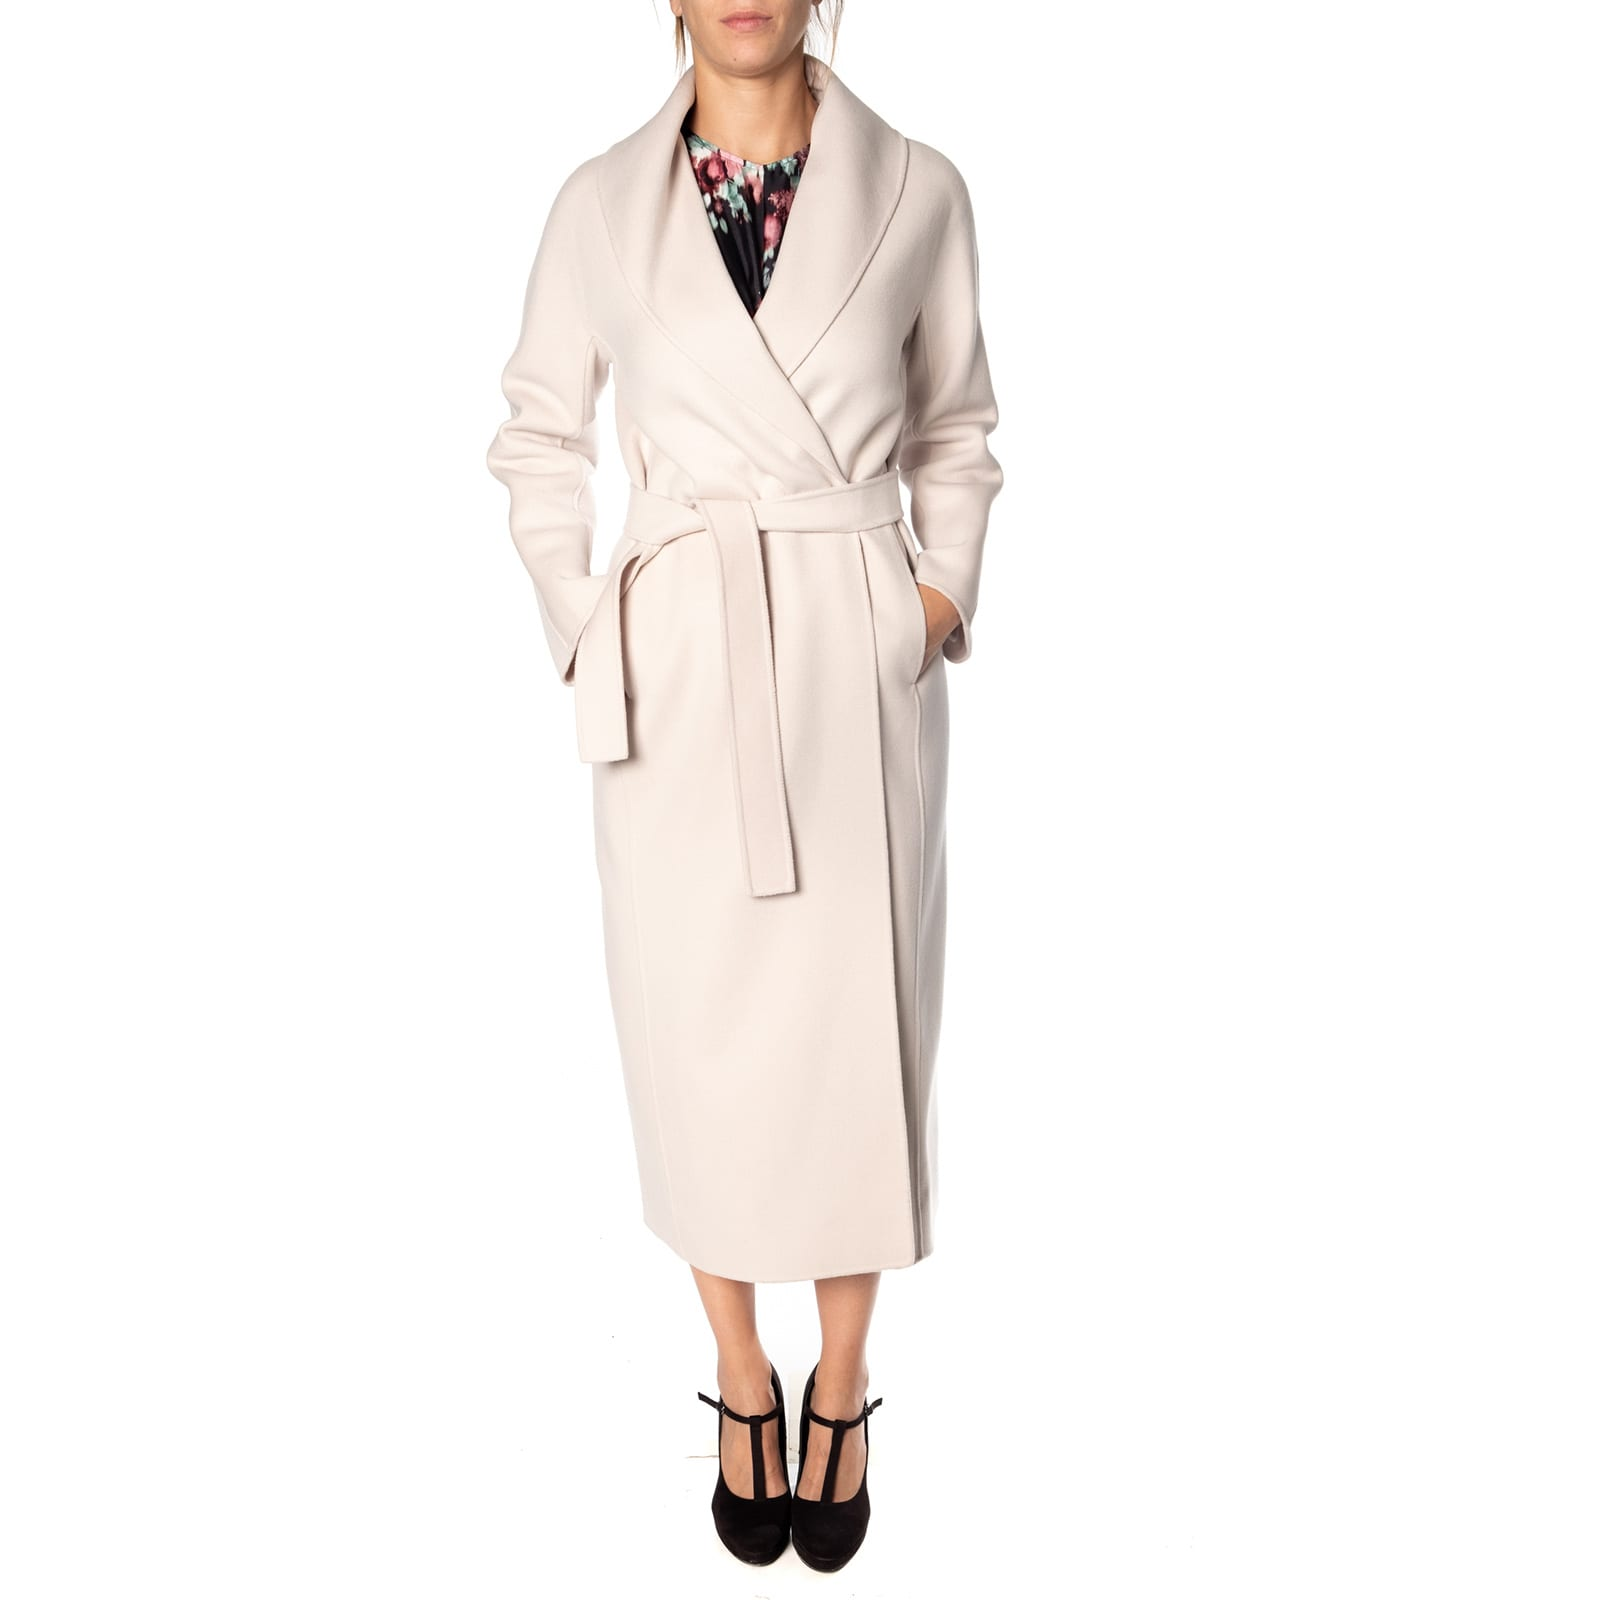 Virgin Wool Max Mara Coat